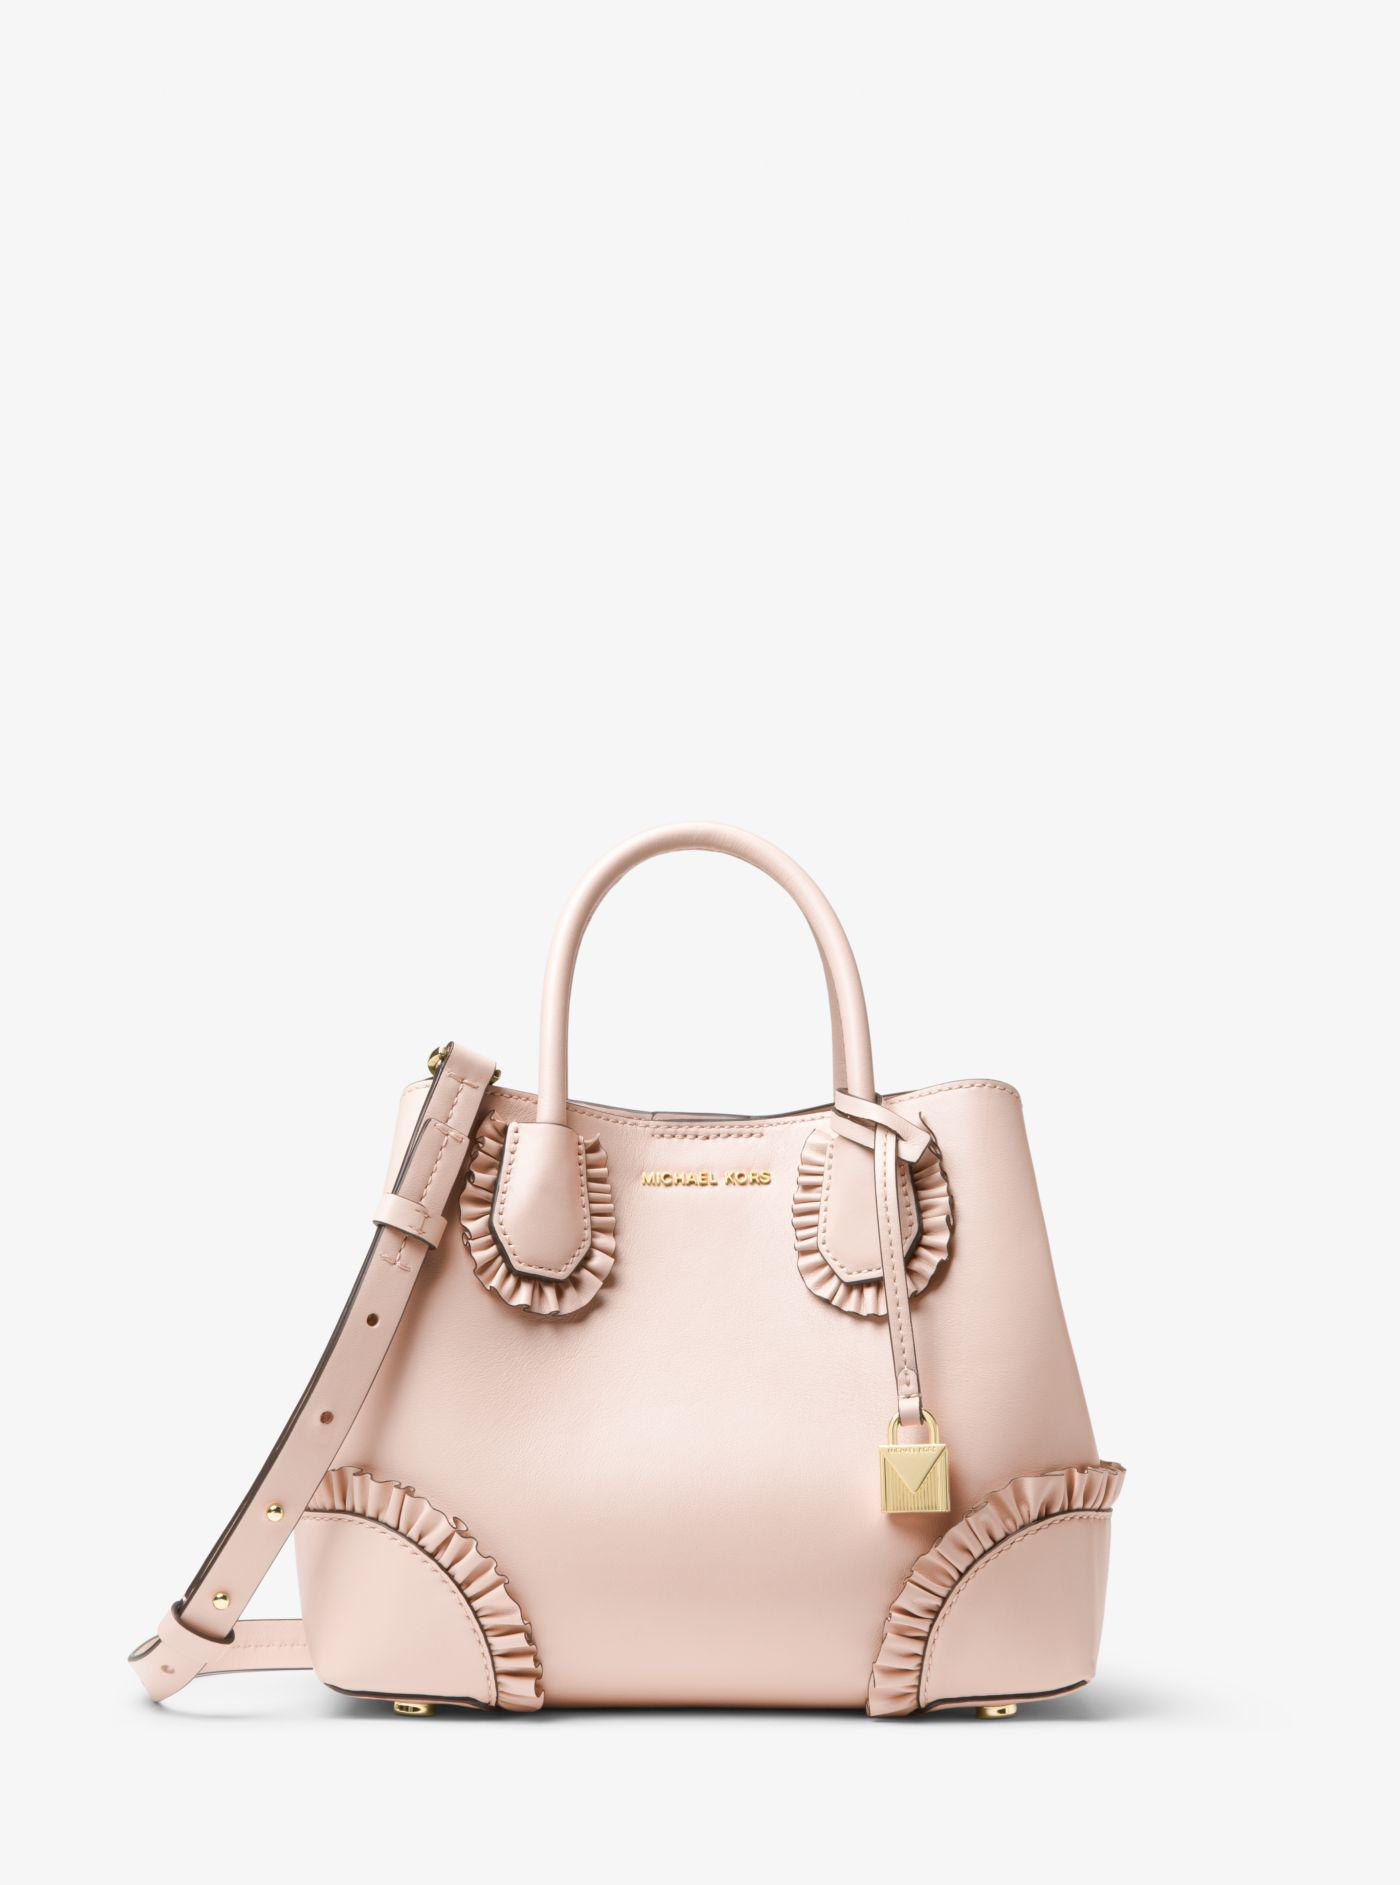 Mercer Gallery Small Center Zip Satchel Bag in Ultra Pink Polisher Leather Michael Michael Kors B3ginD